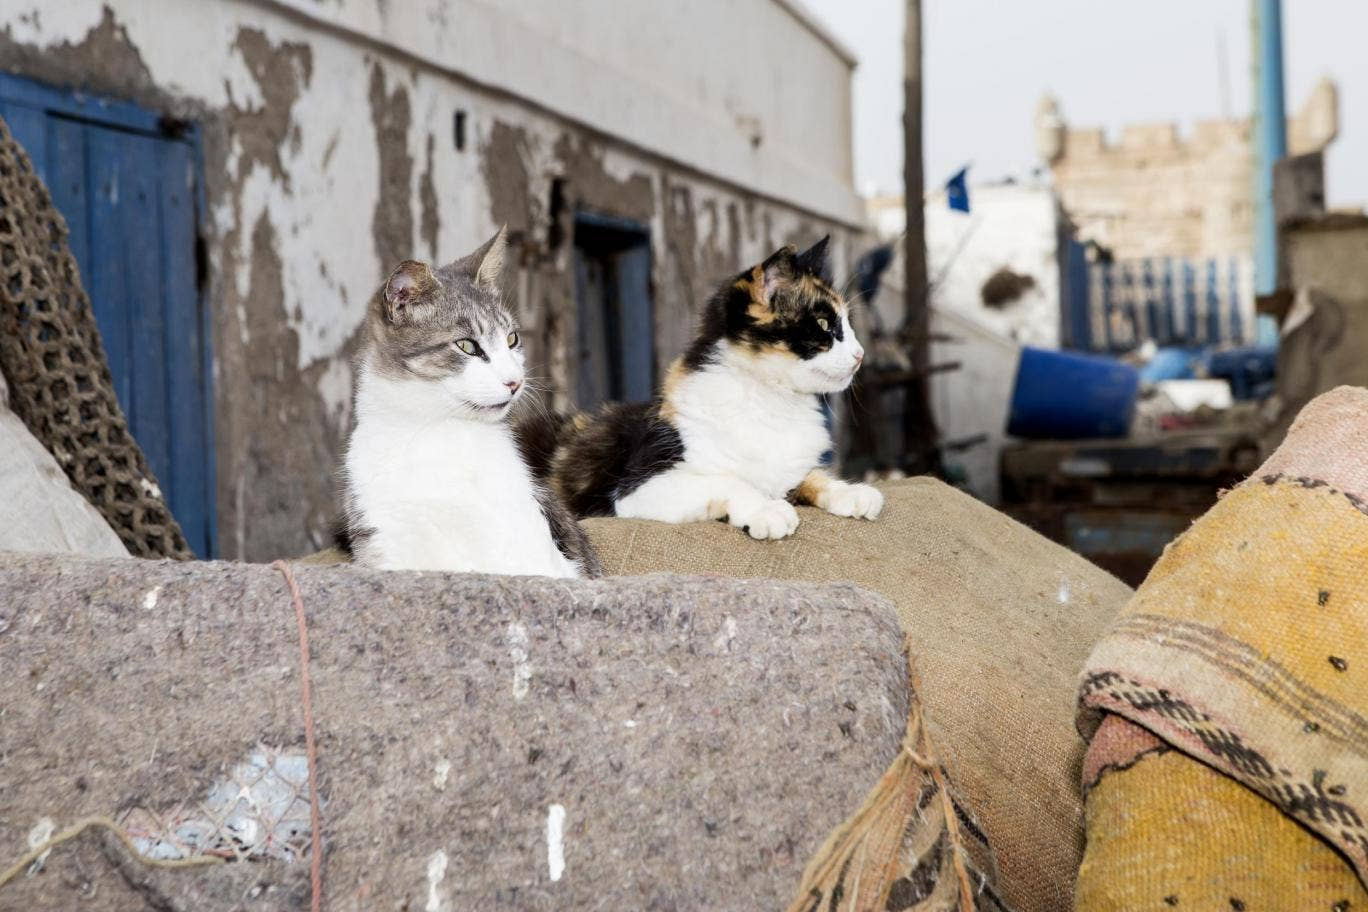 The Happy Cats of Morocco